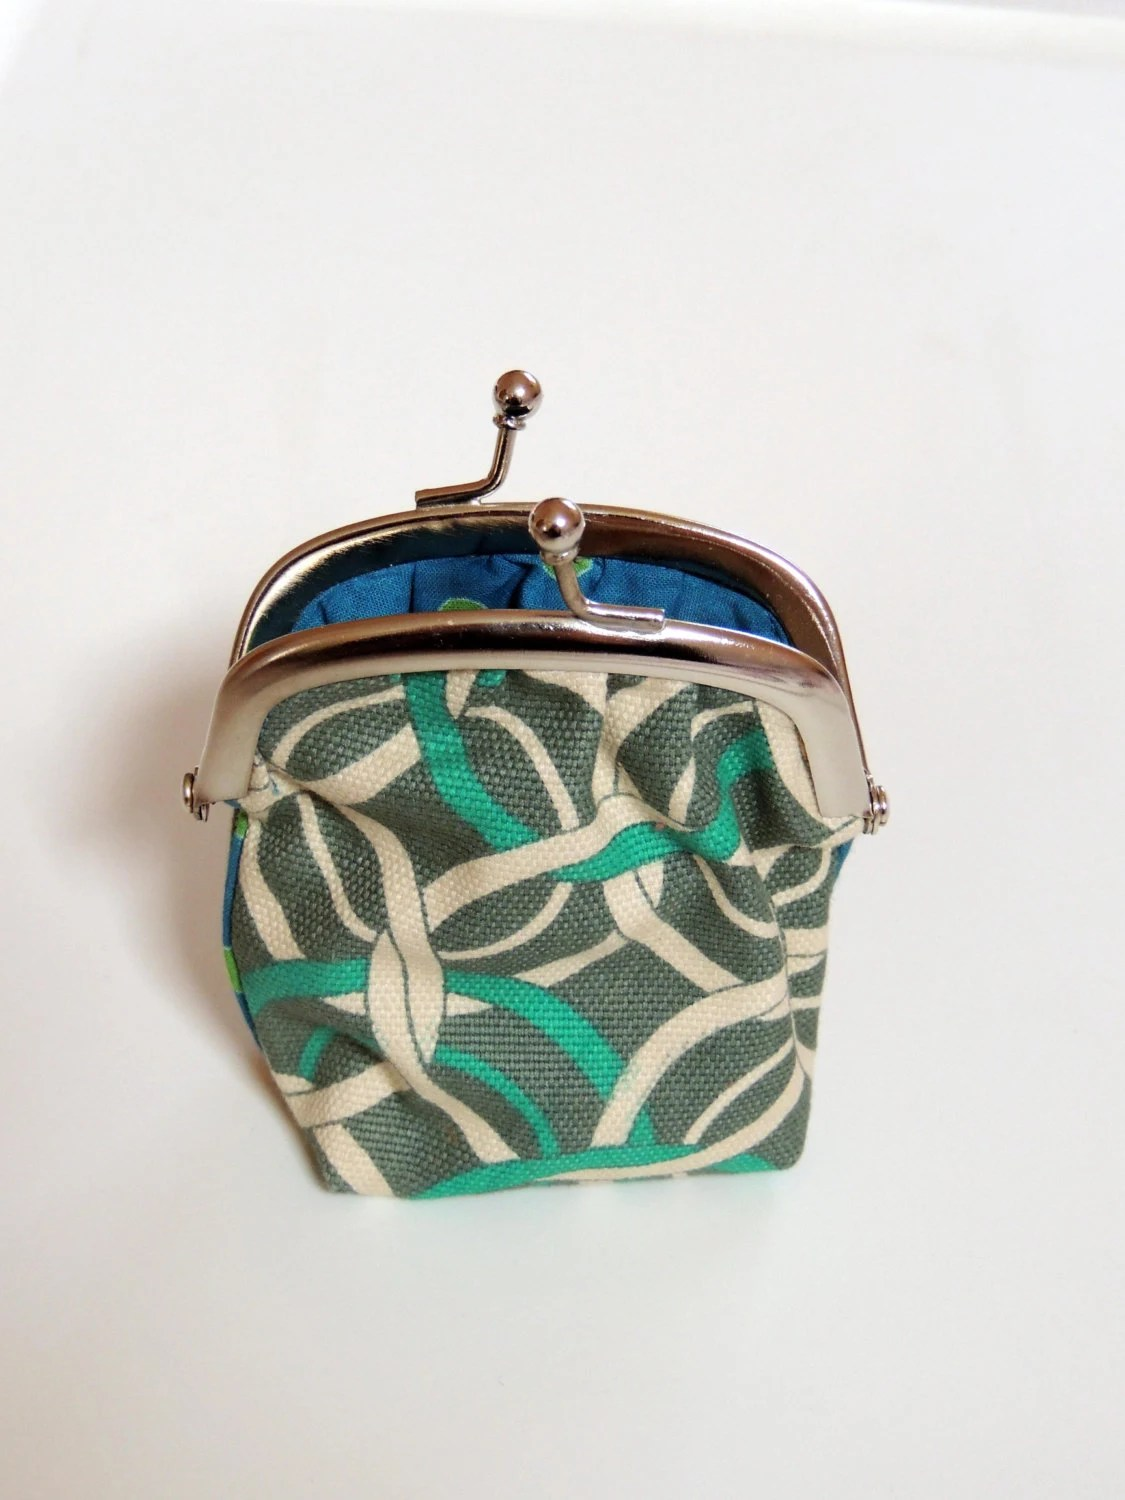 SALE - Geometric green and white change purse with metal frame - On sale - Free shipping - ASeasonInIndia